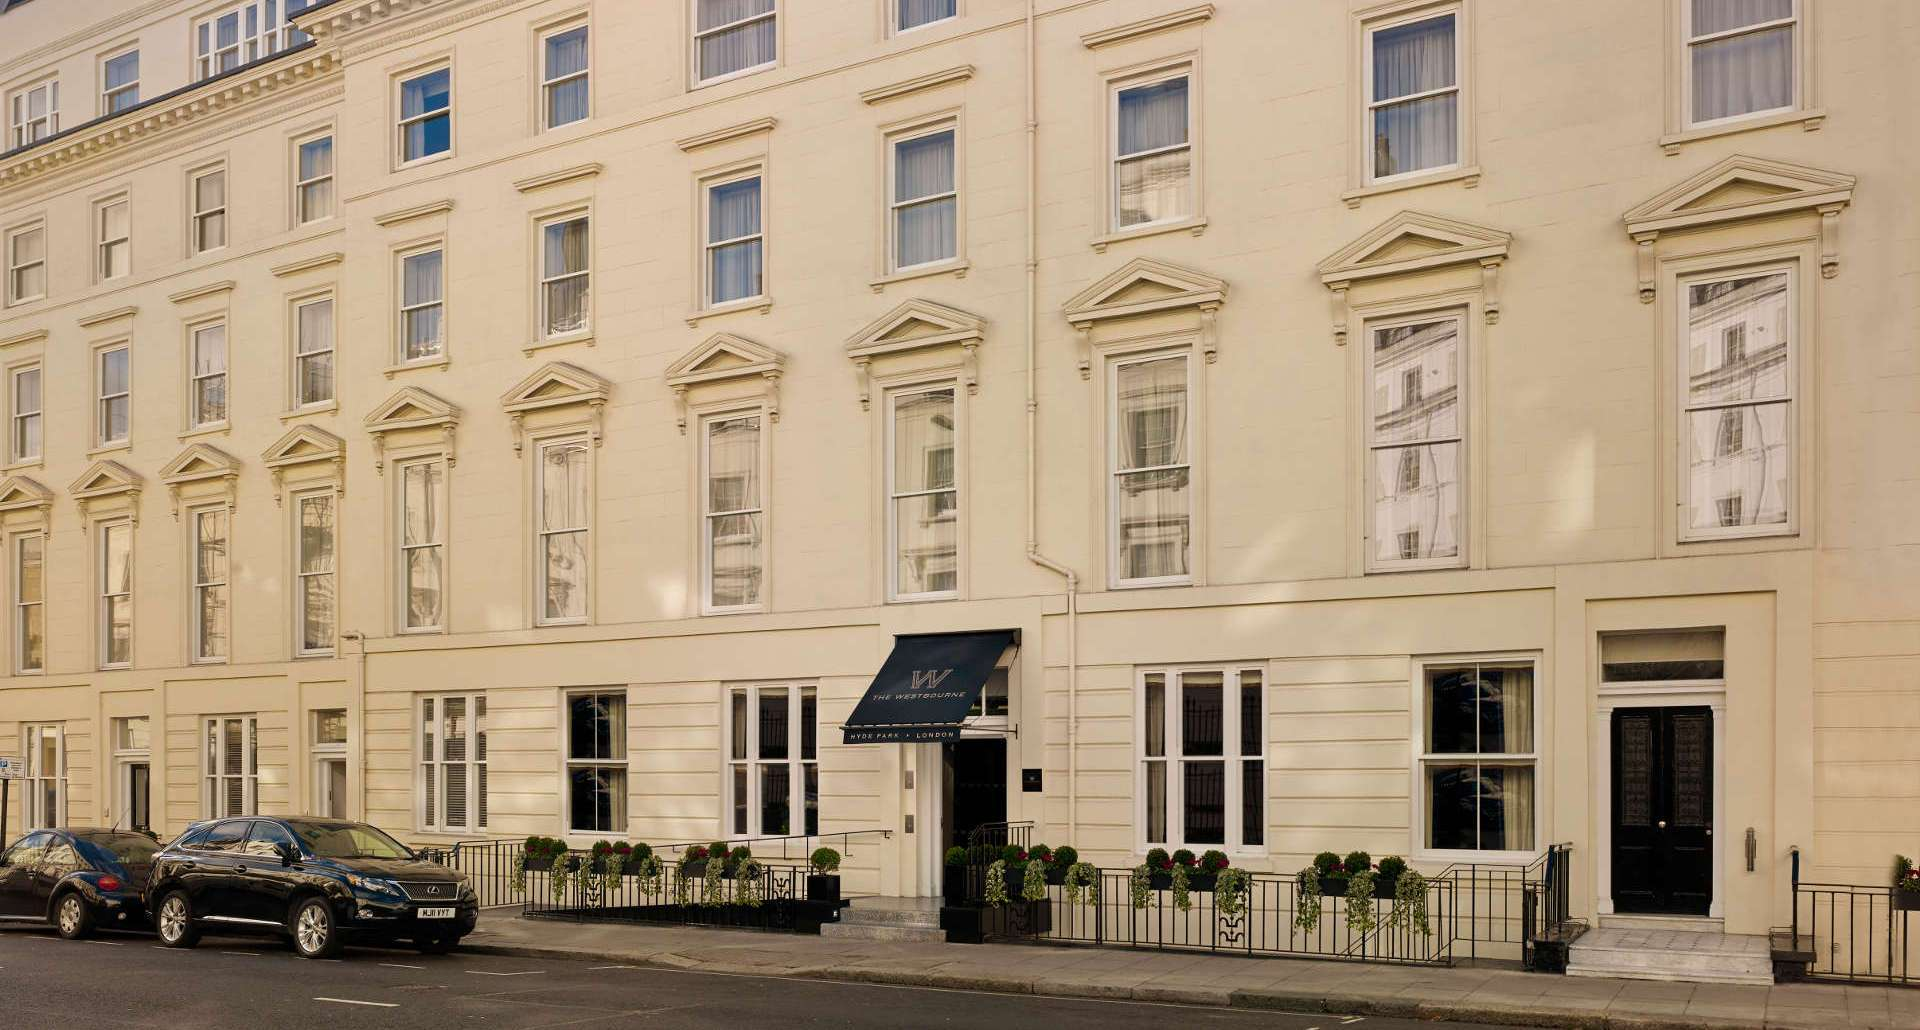 Westbourne hotels in w2 london